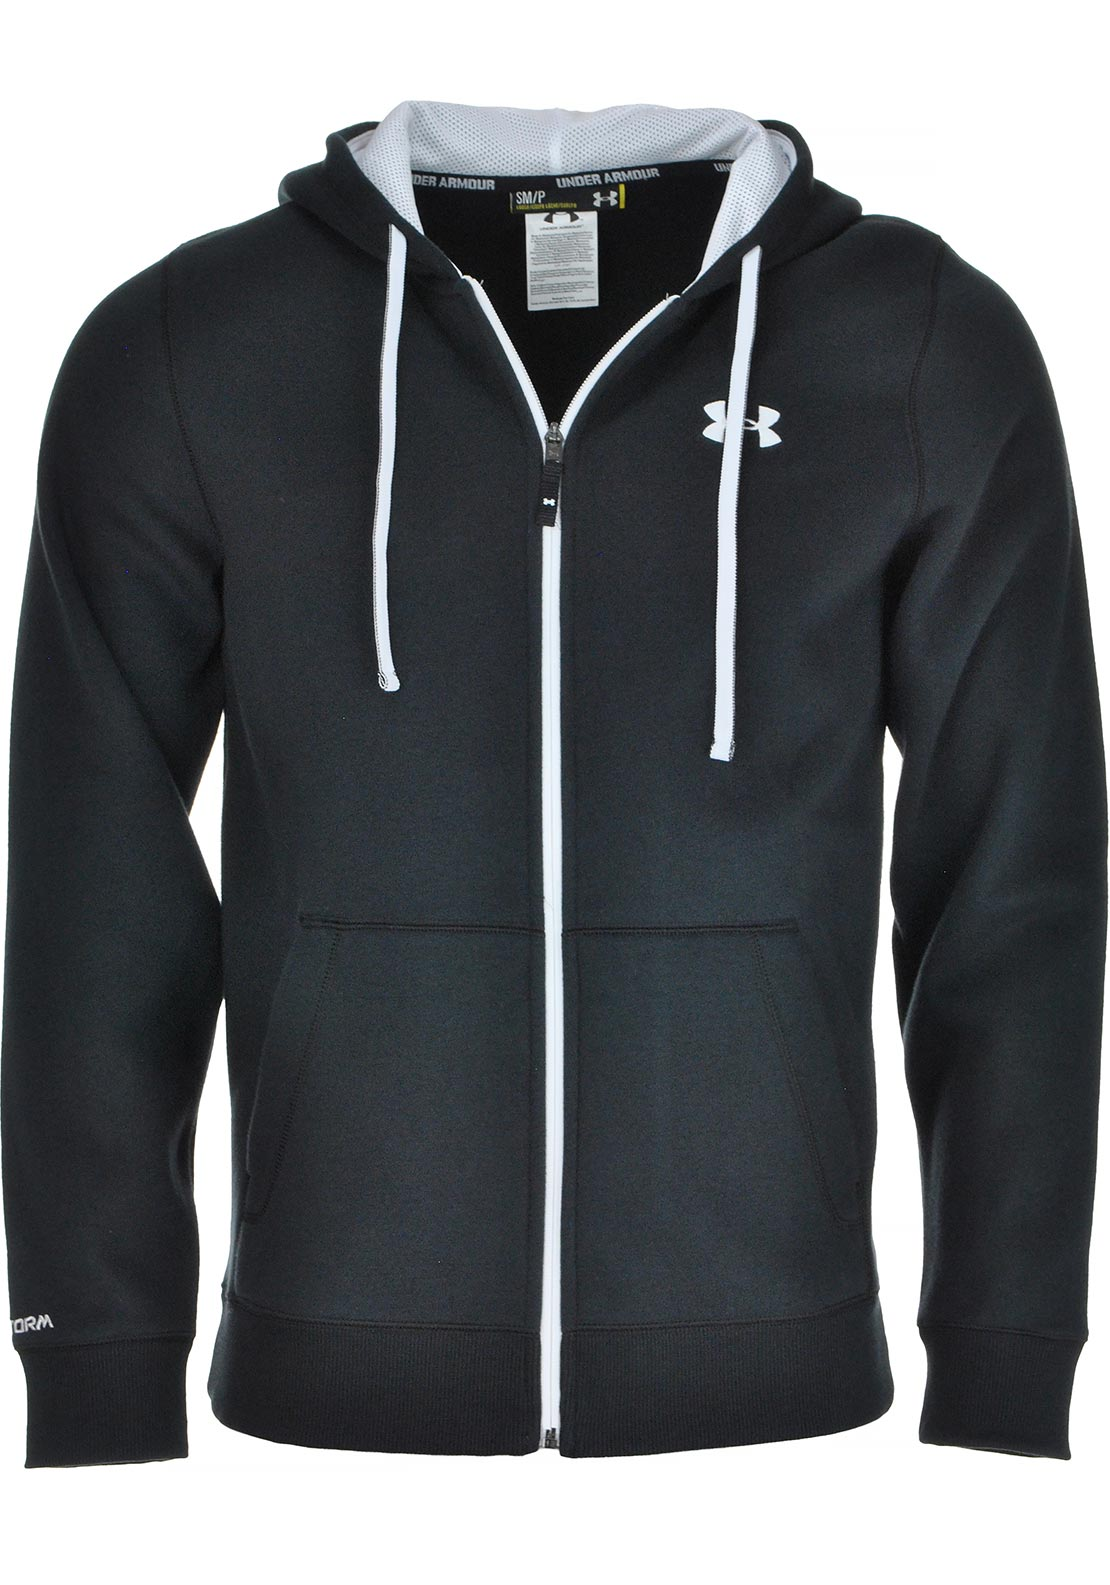 Under Armour Mens Storm Full Zip Hoodie, Black